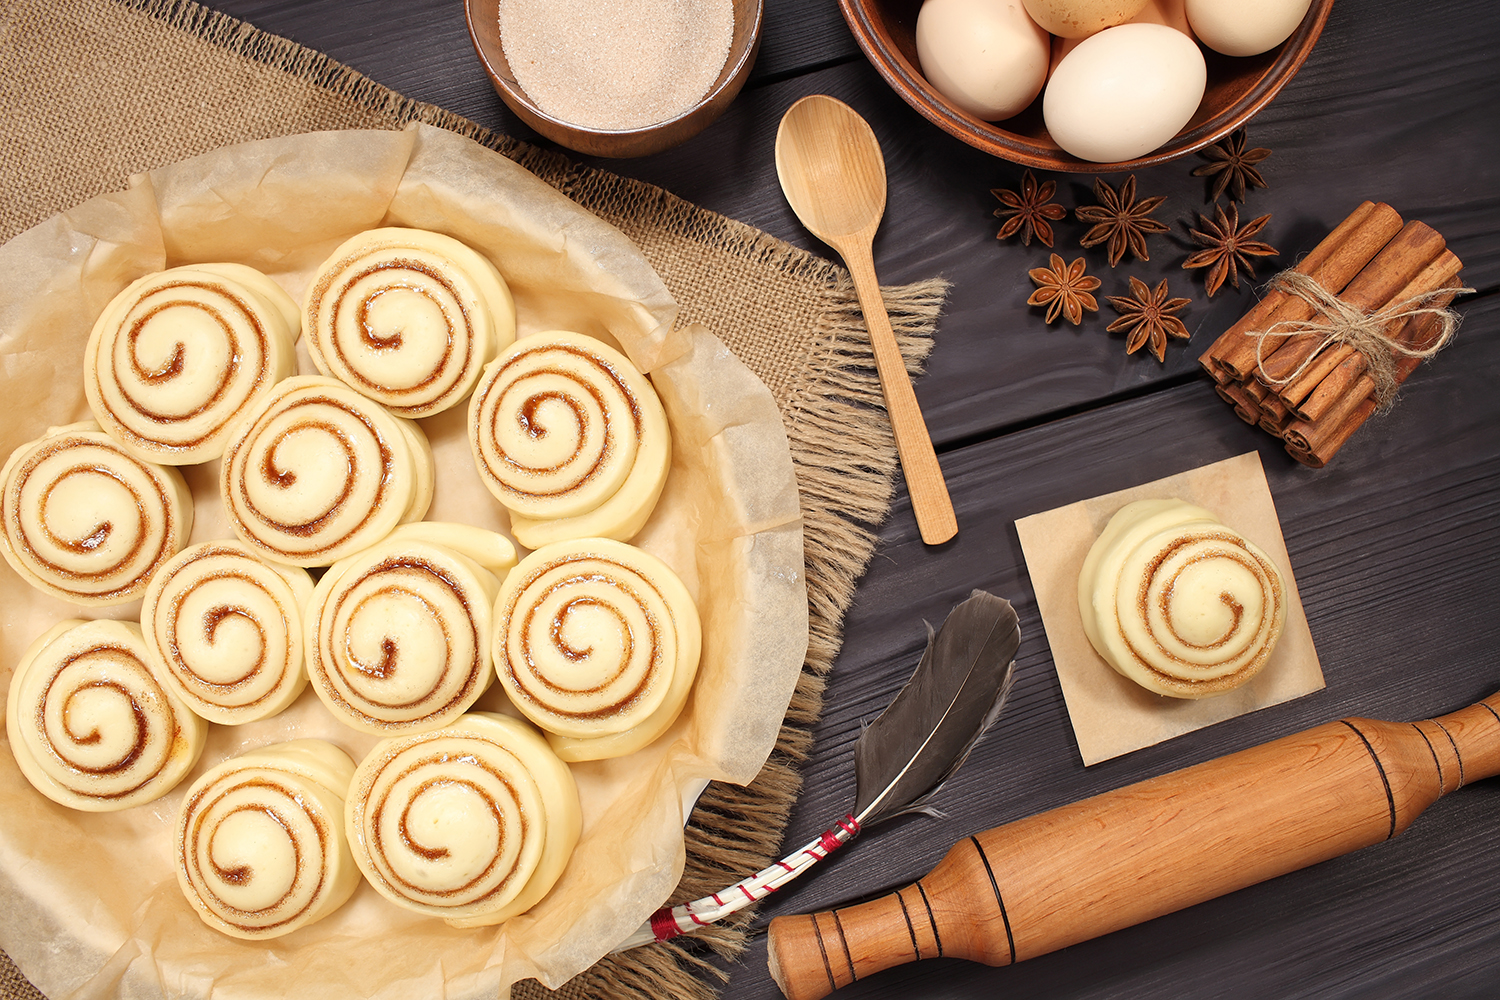 Set of 11 photos - raw buns: cinnamon rolls prepared for baking on a background of rustic table example image 15